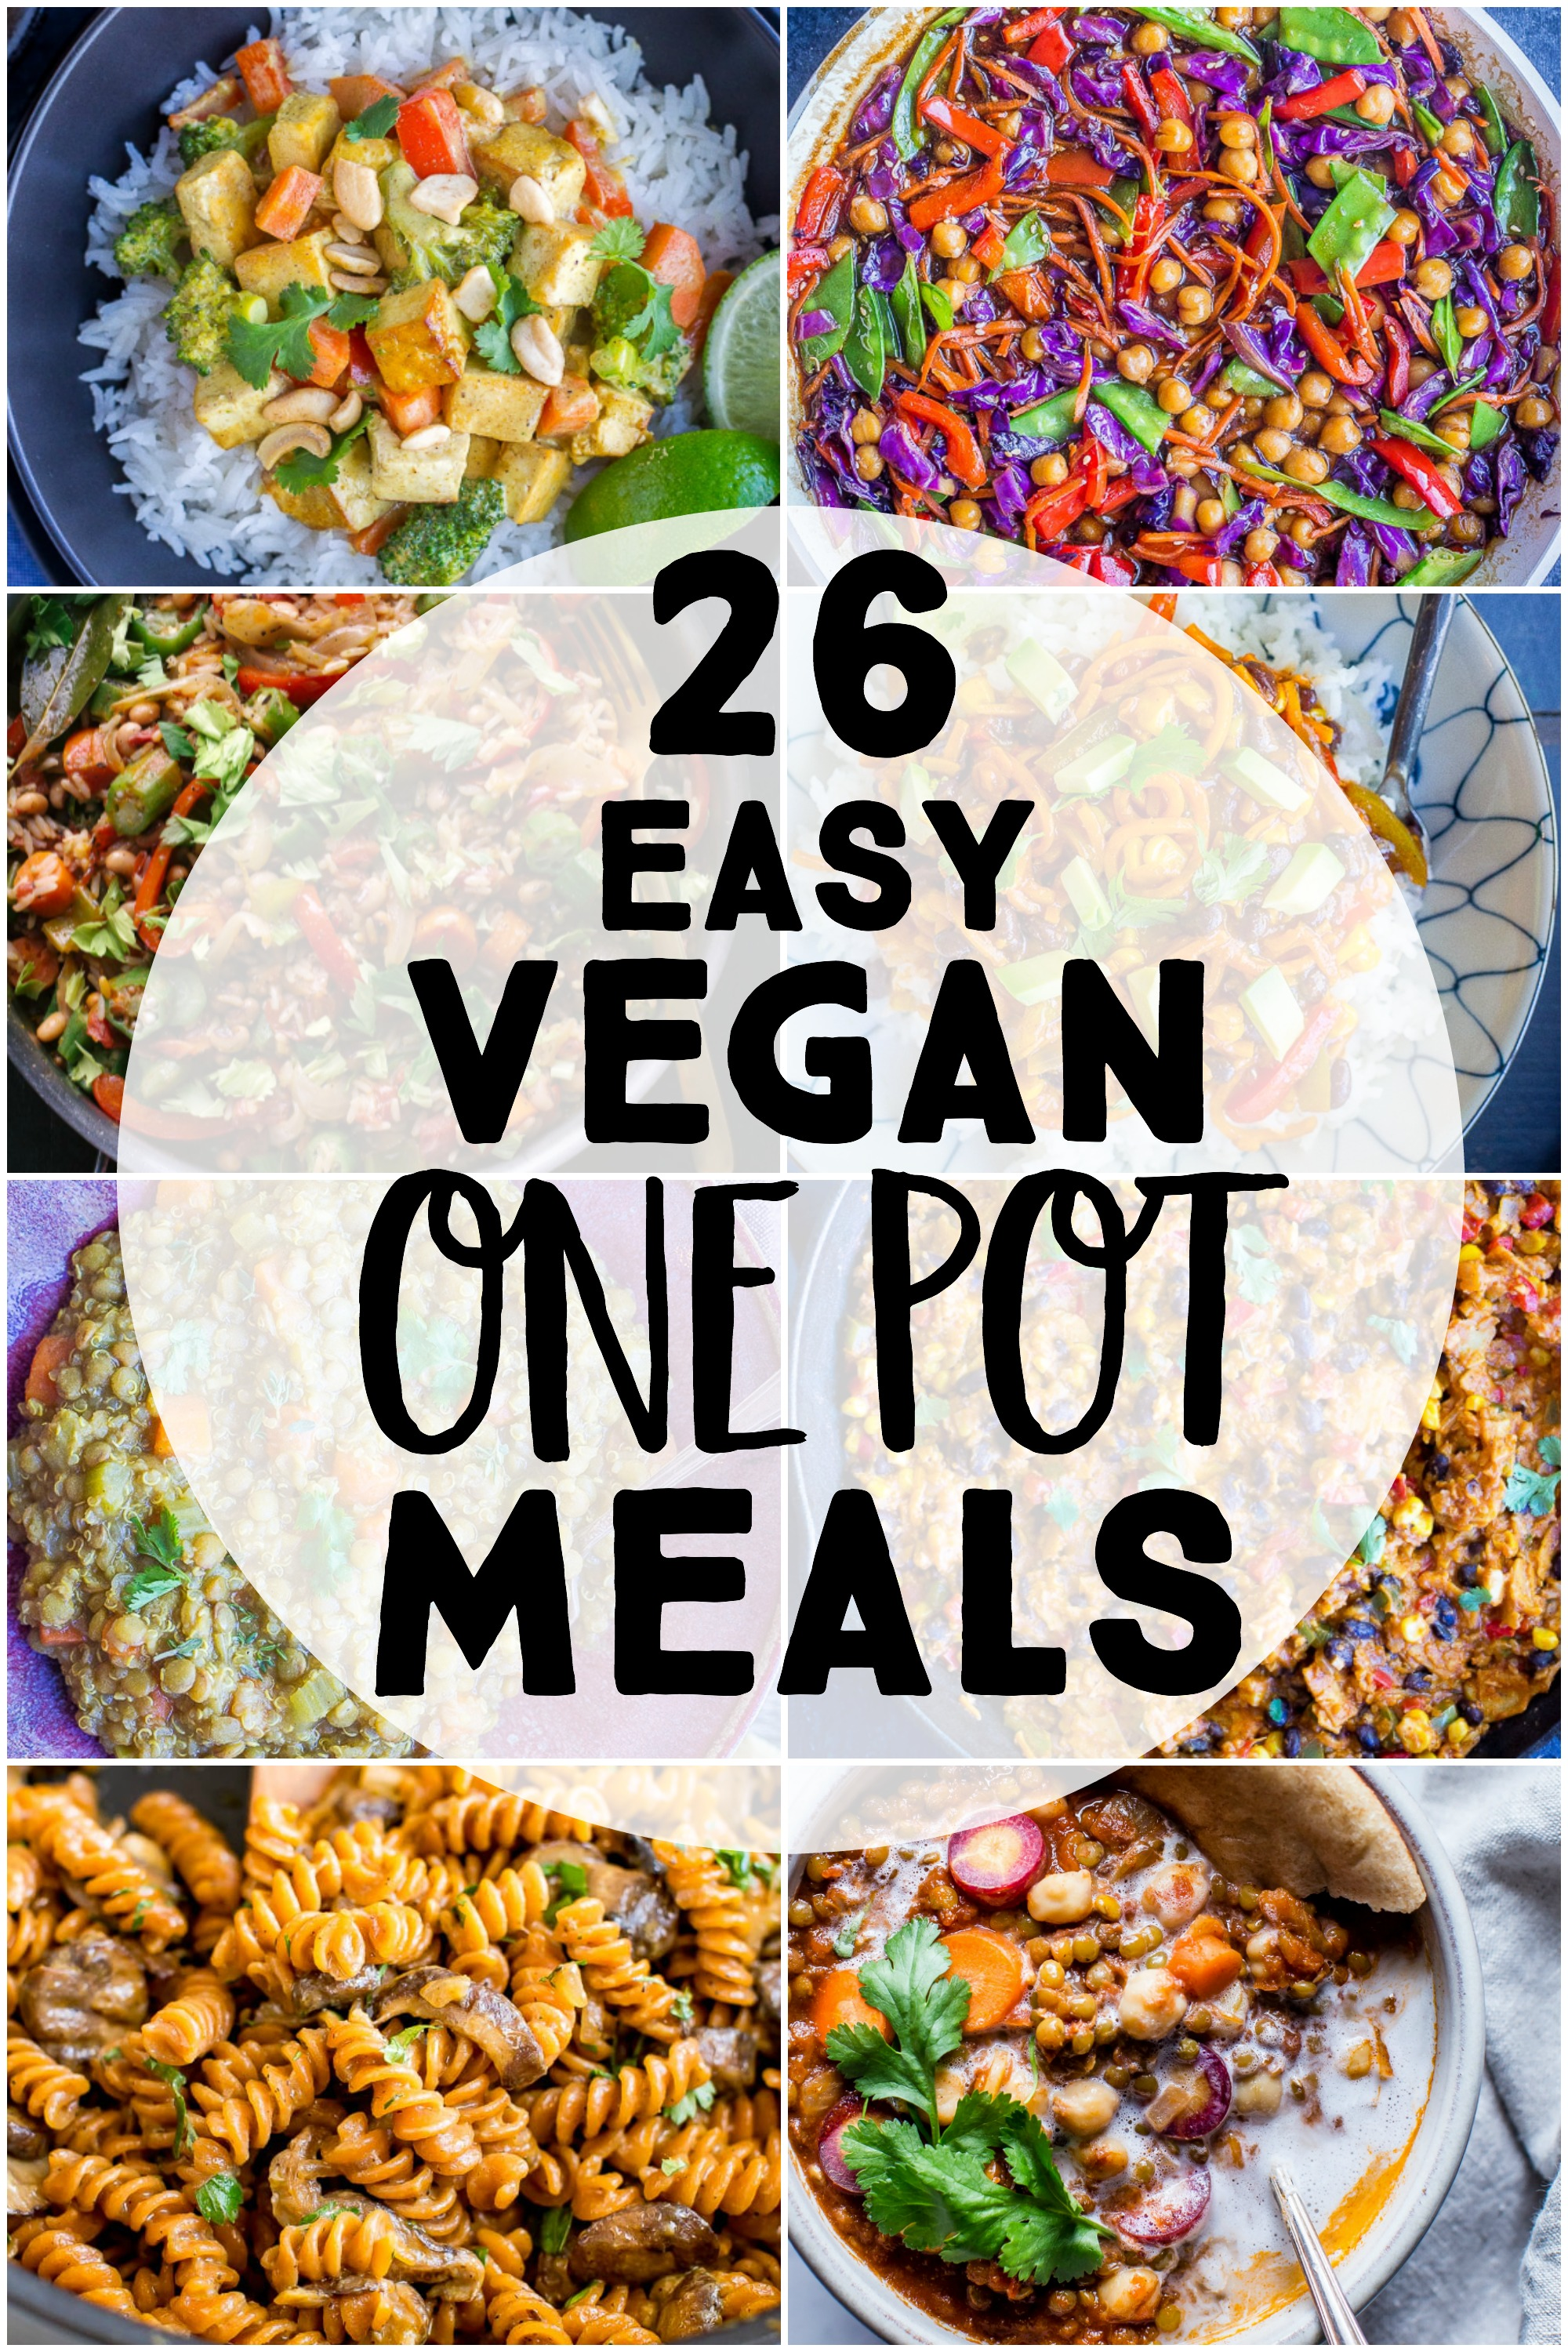 26 Easy Vegan One Pot Meals She Likes Food